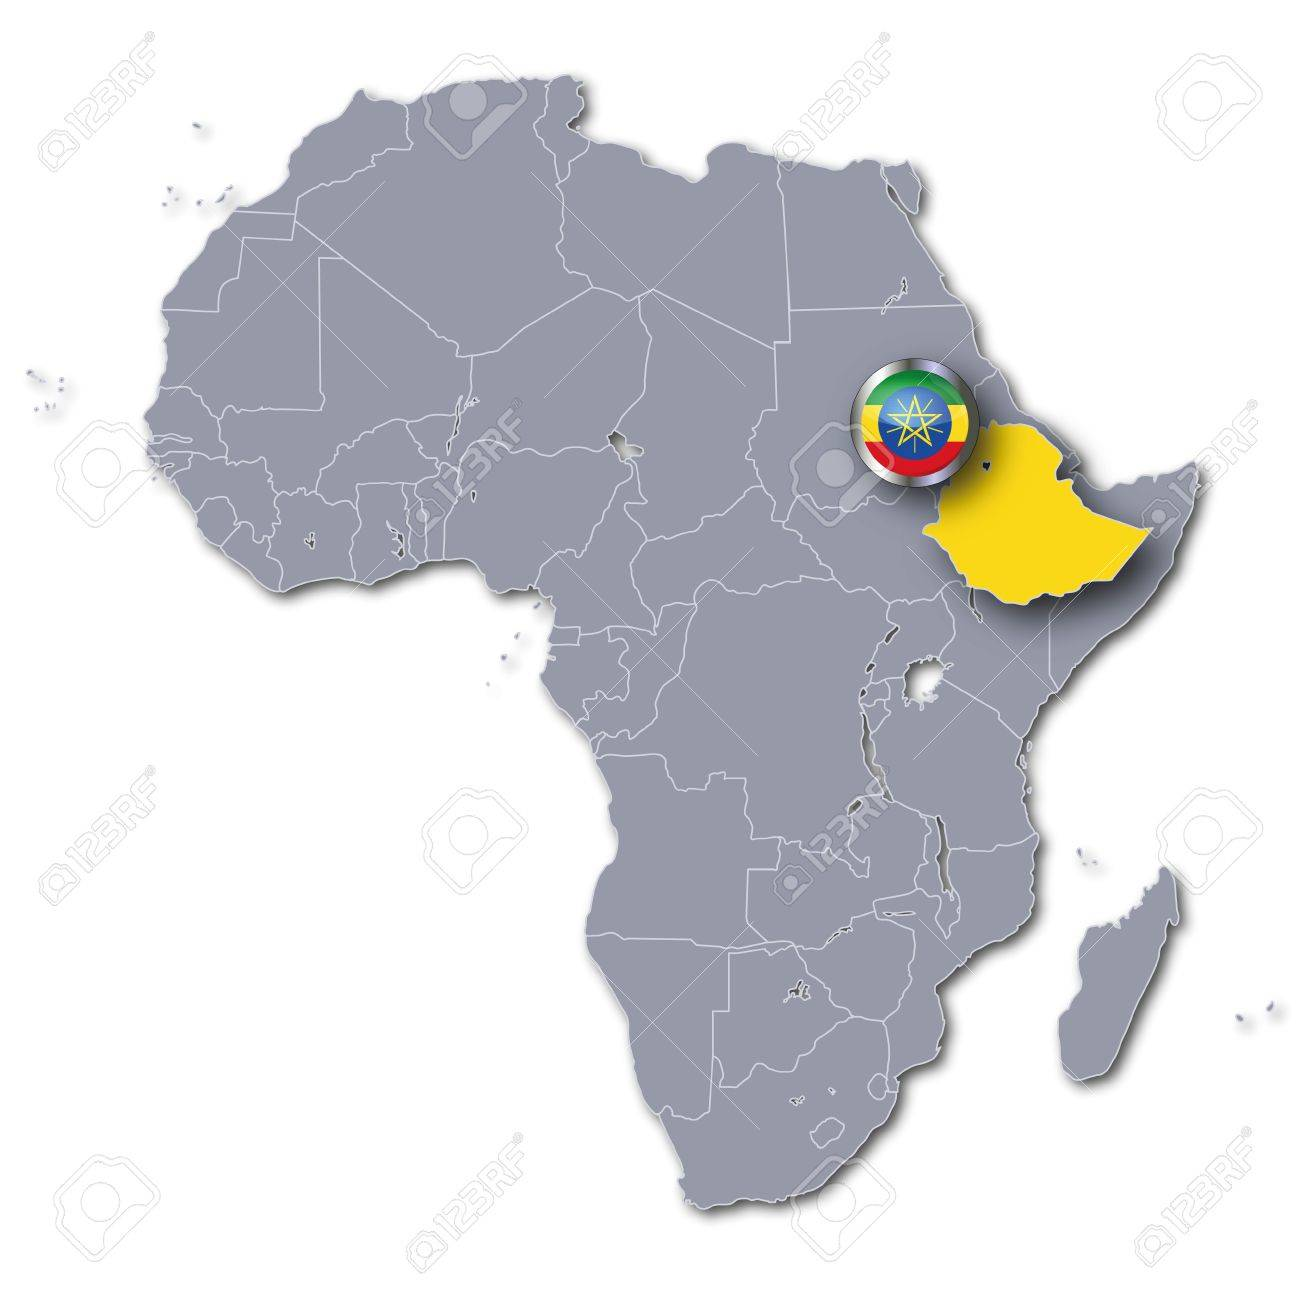 Africa Map Ethiopia Stock Photo Picture And Royalty Free Image